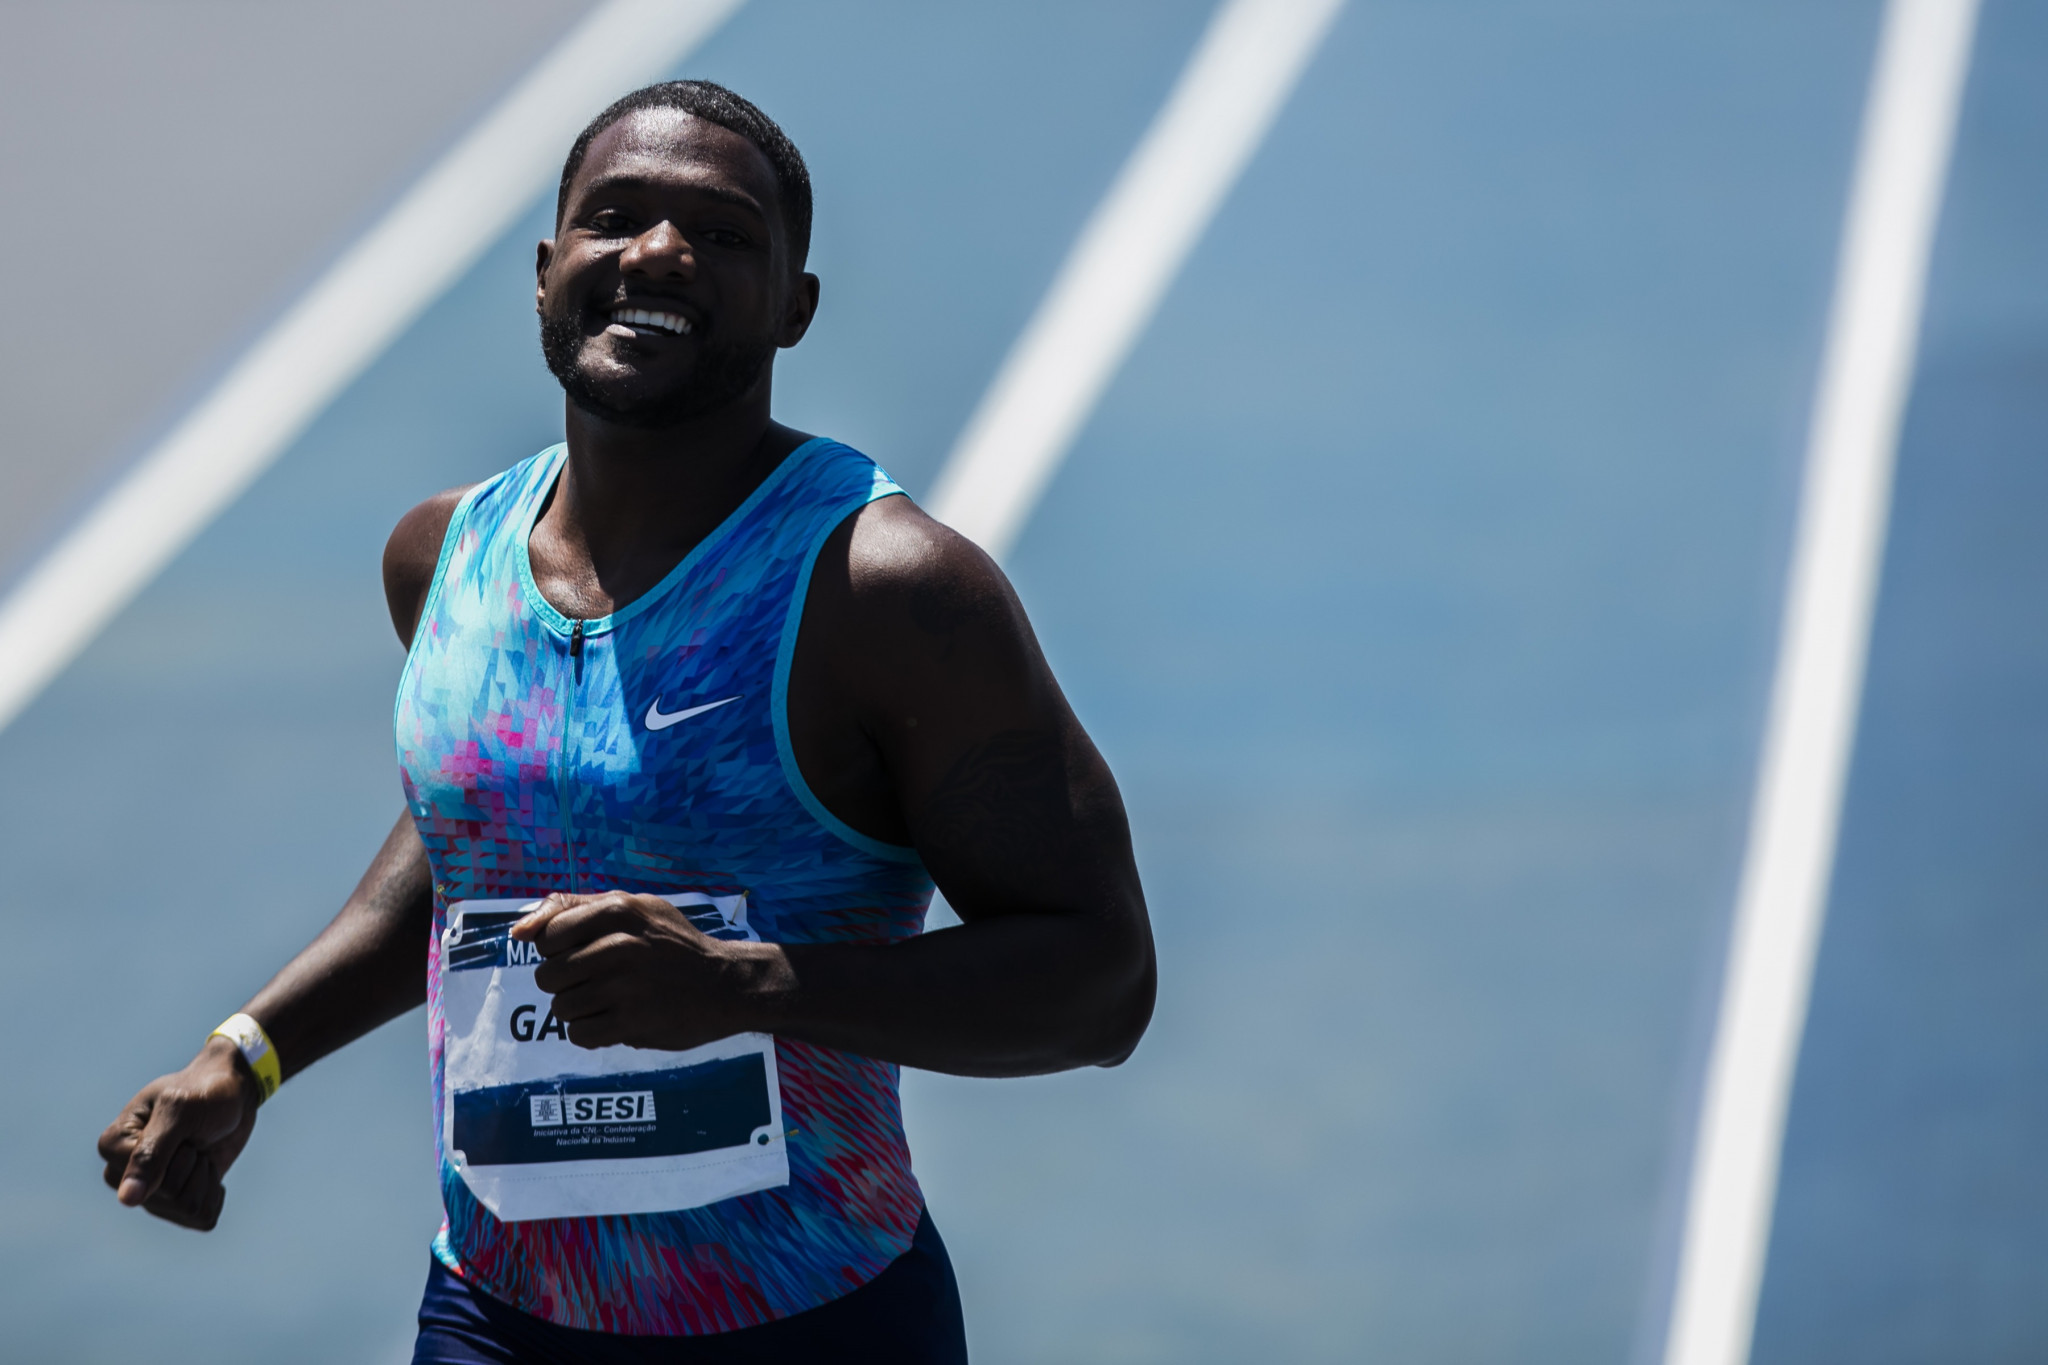 Nigel Levine is understood to use Robert Wagner, the man at the centre of the latest Justin Gatlin controversy, as a race agent ©Getty Images